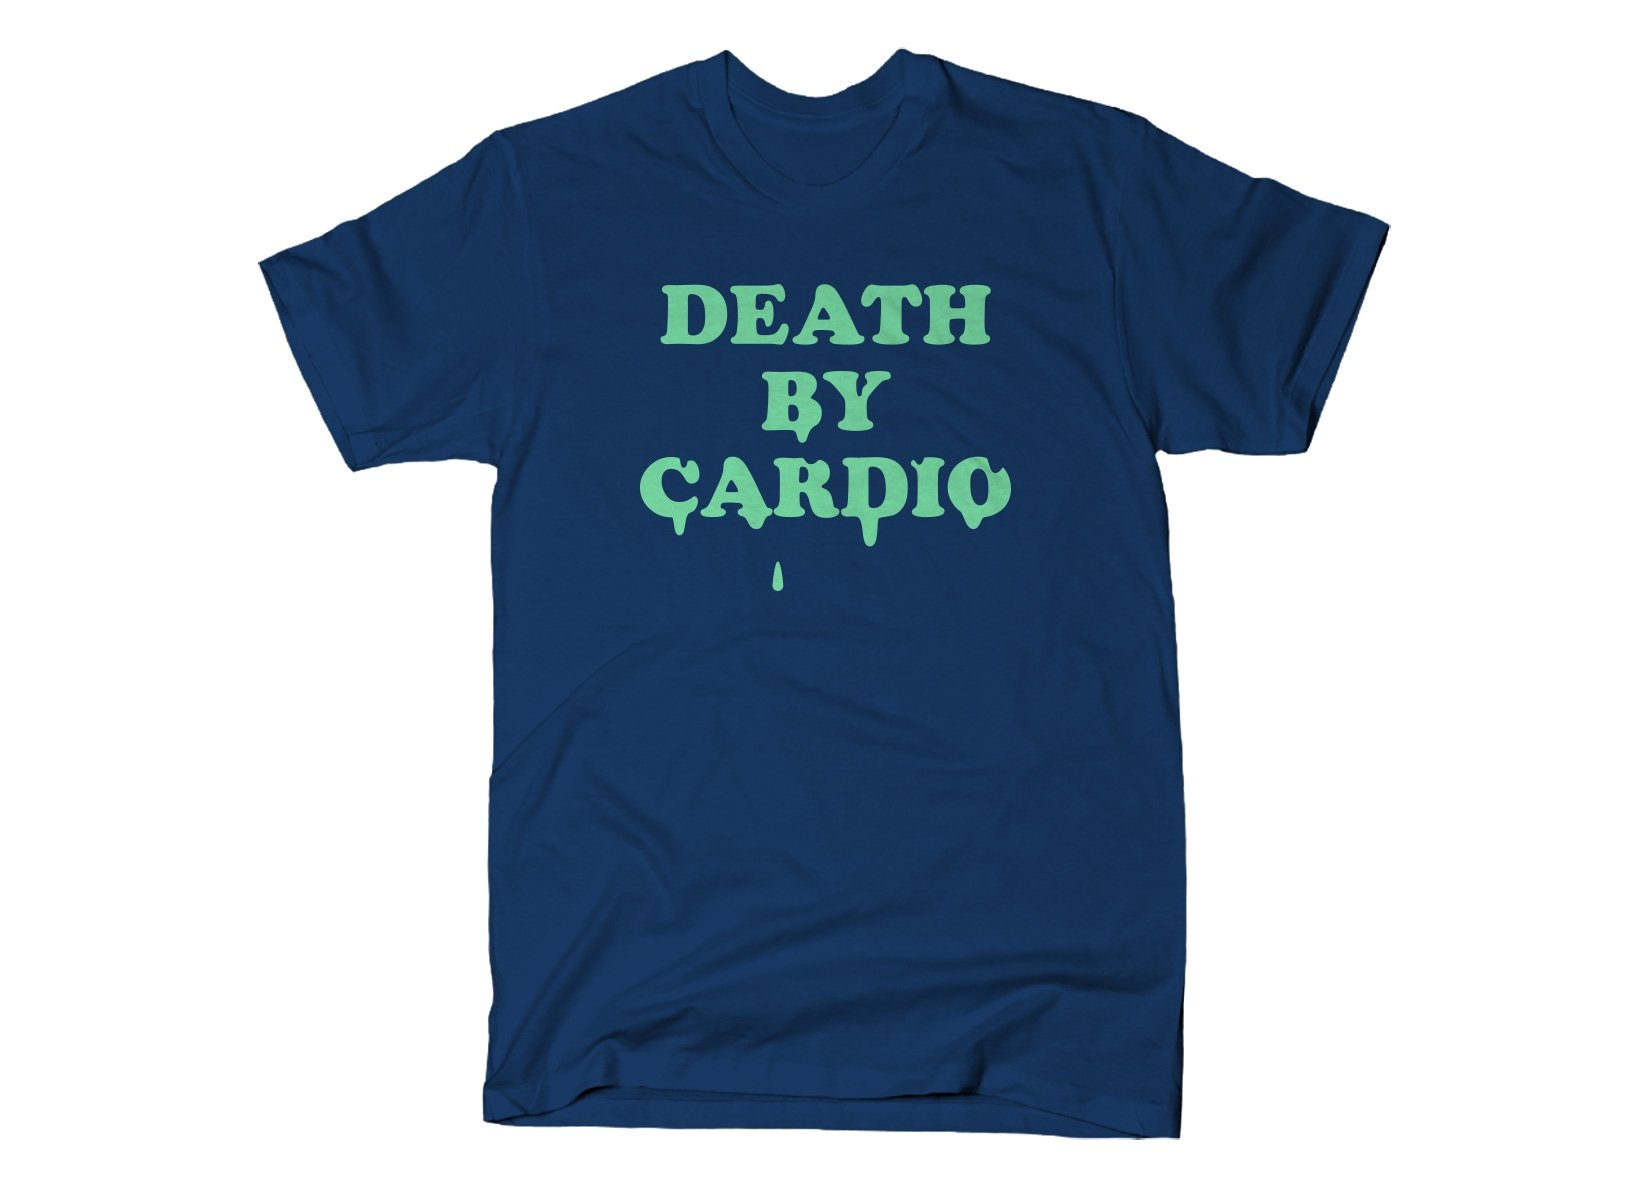 Death By Cardio on Mens T-Shirt